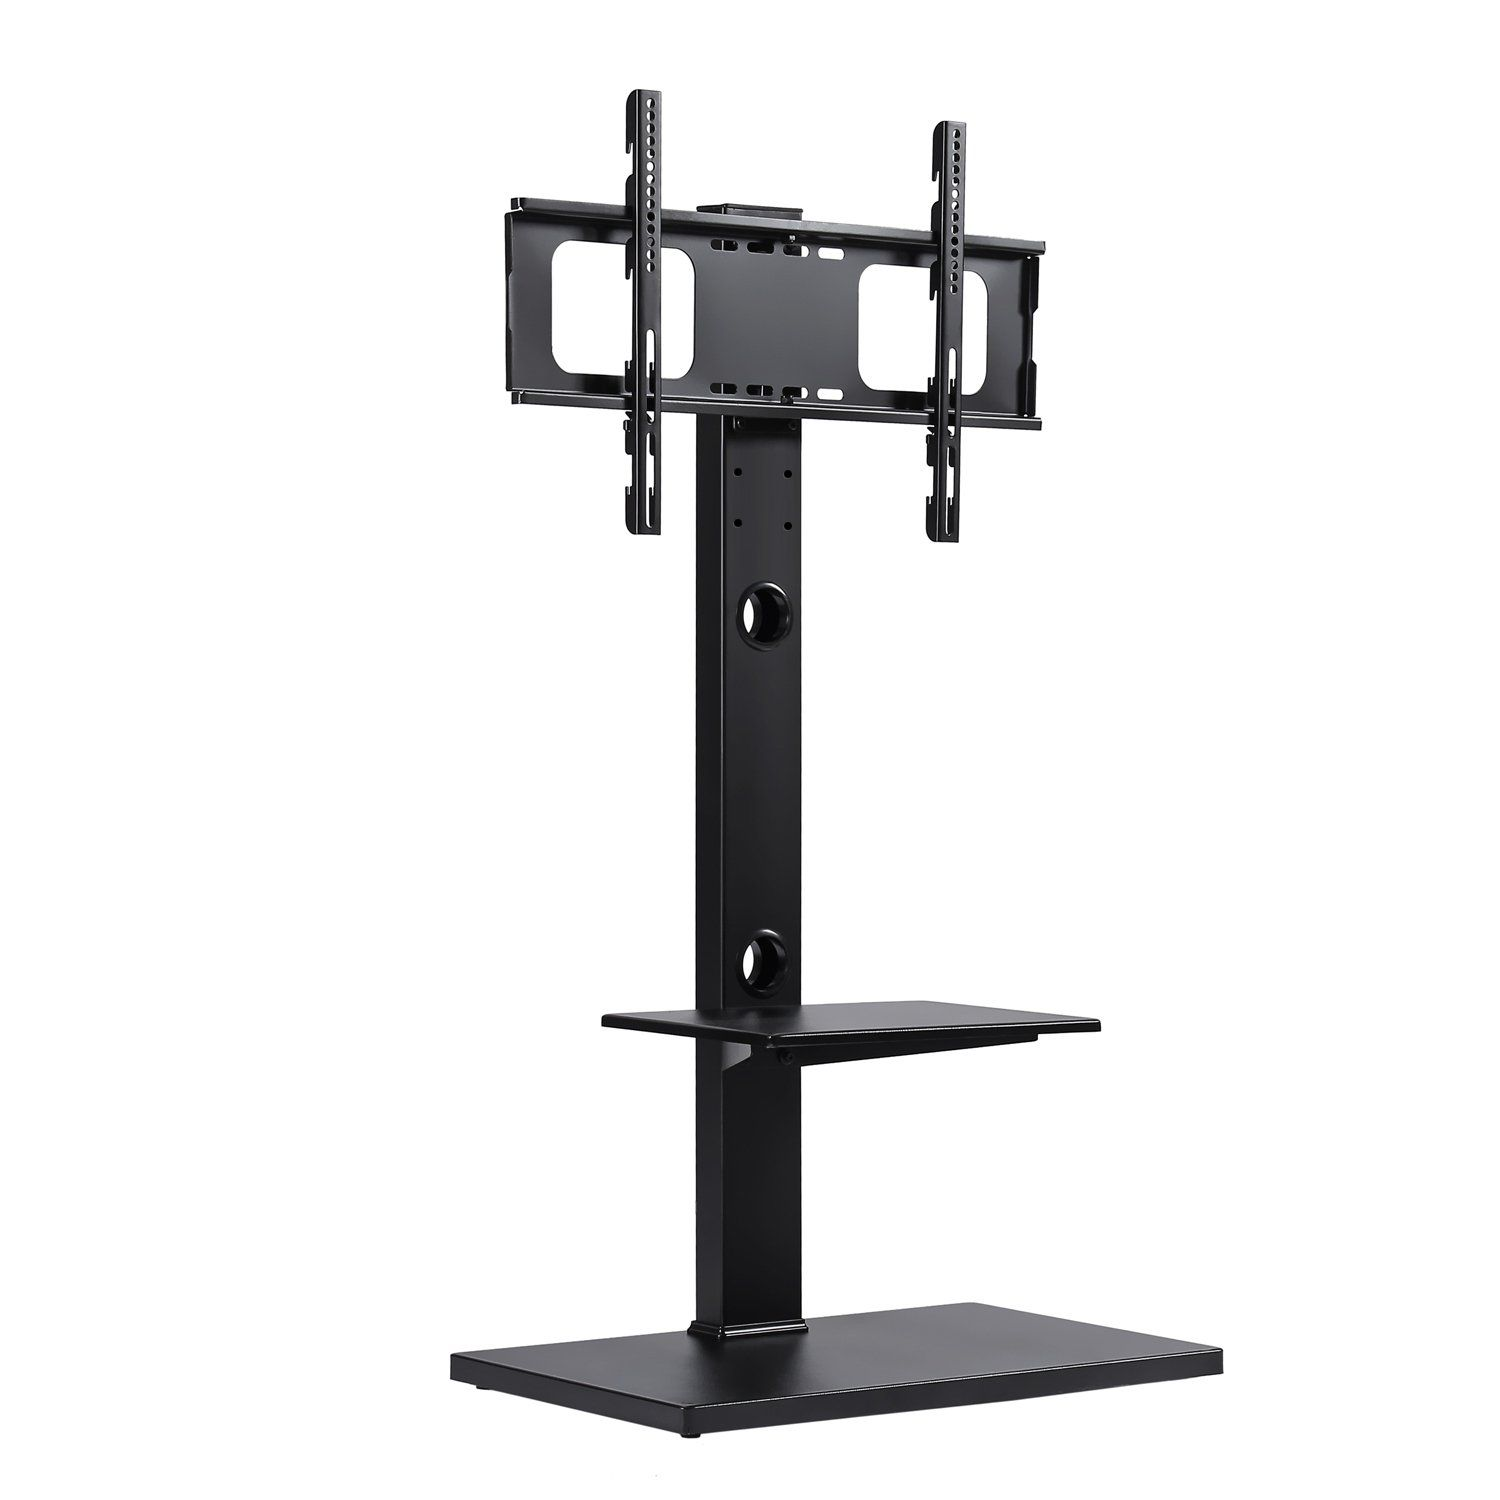 Rfiver Swivel Floor Tv Stand With Mount And Two Shelves For 32 37 42 47 50 55 60 65 Inches Plasma Lcd Led F Tv Stand With Mount Tv Floor Stand 65 Inch Tv Stand